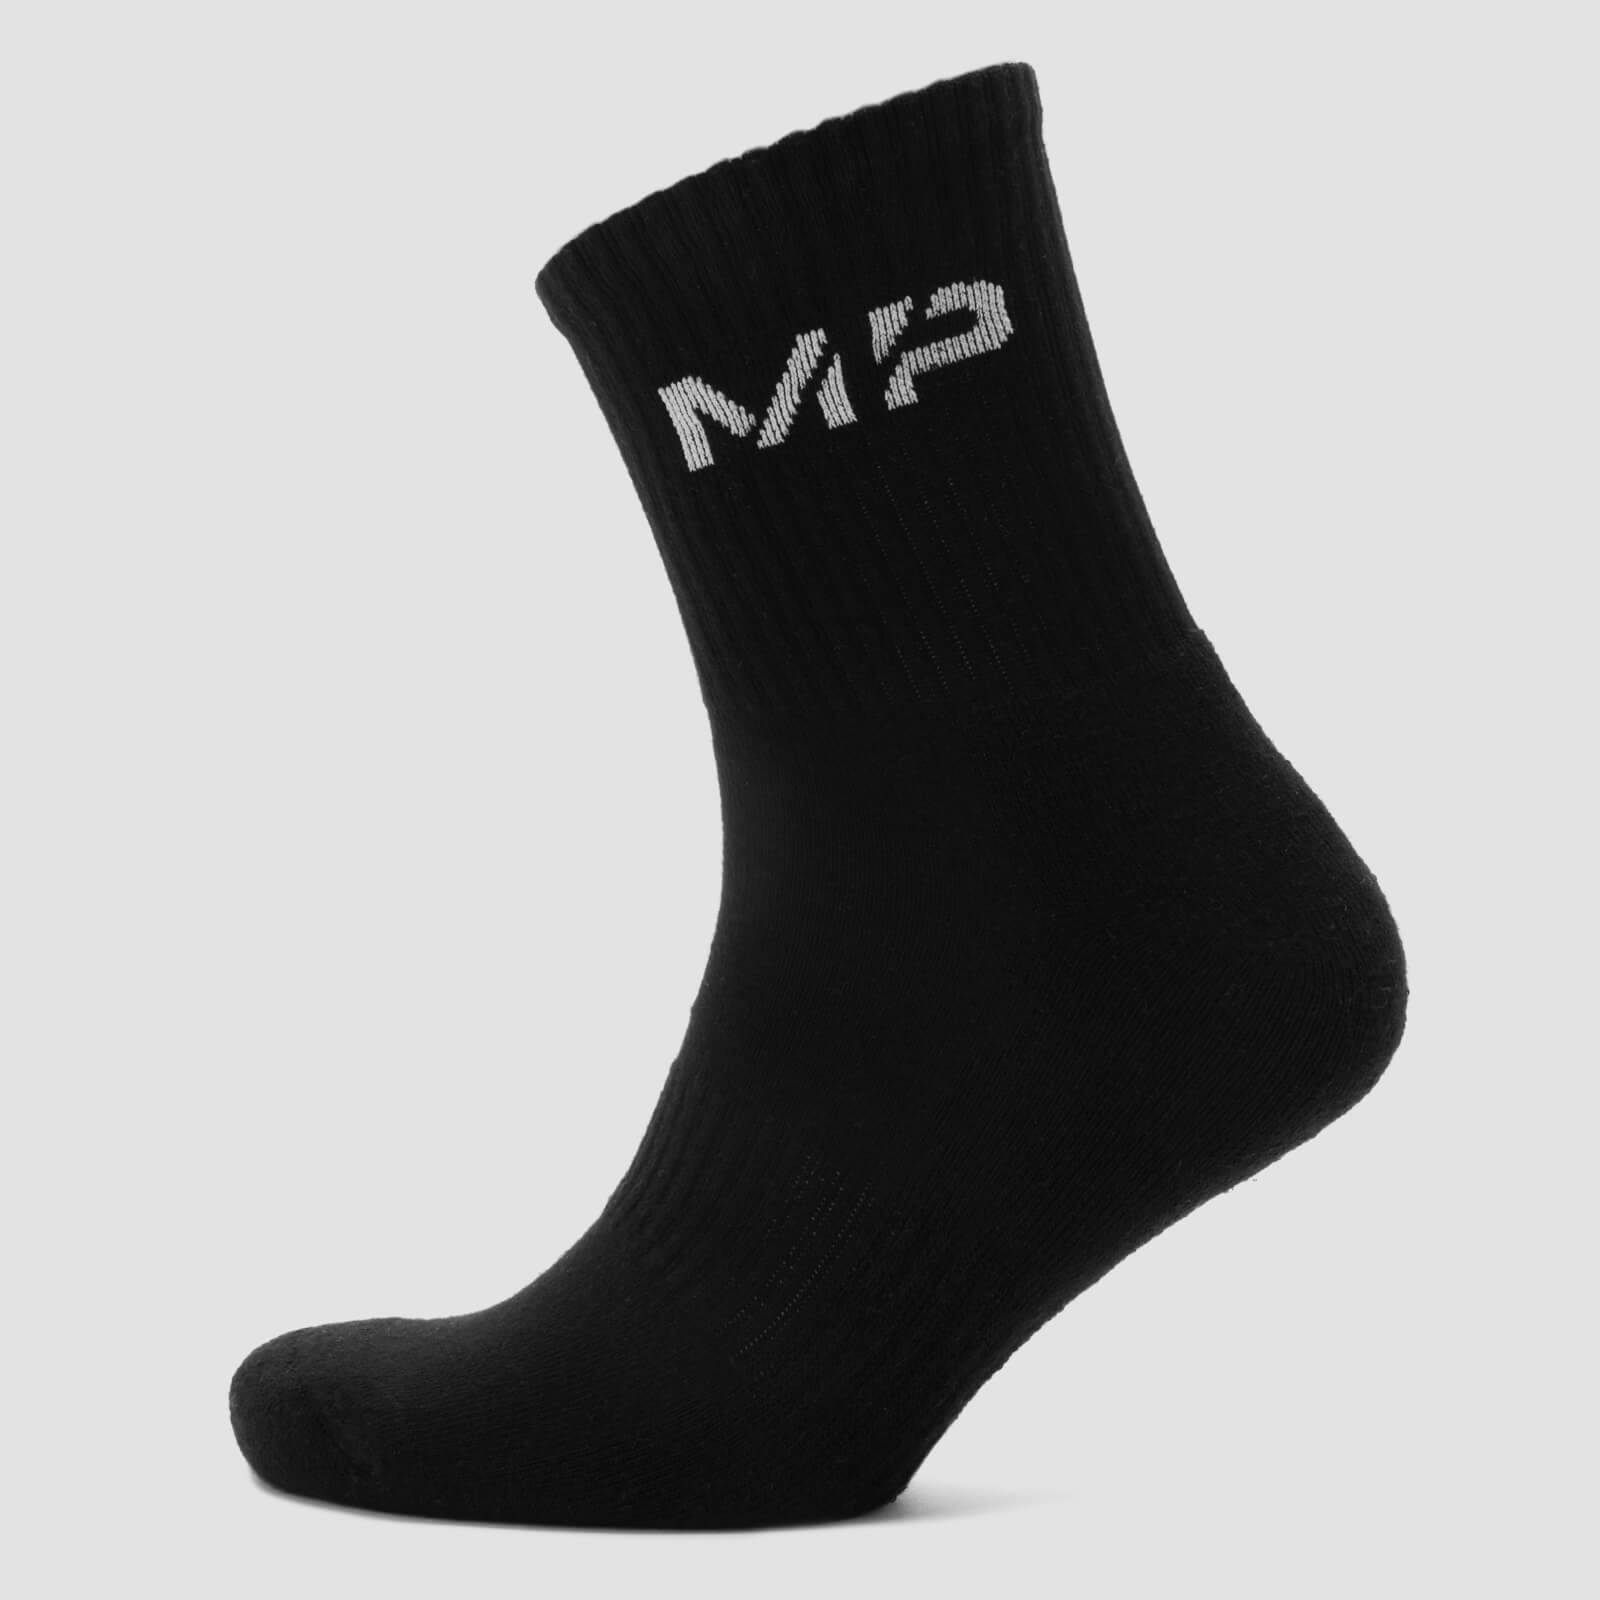 Myprotein MP Men's Core Crew Socks (2 Pack) - Black - UK 9-12